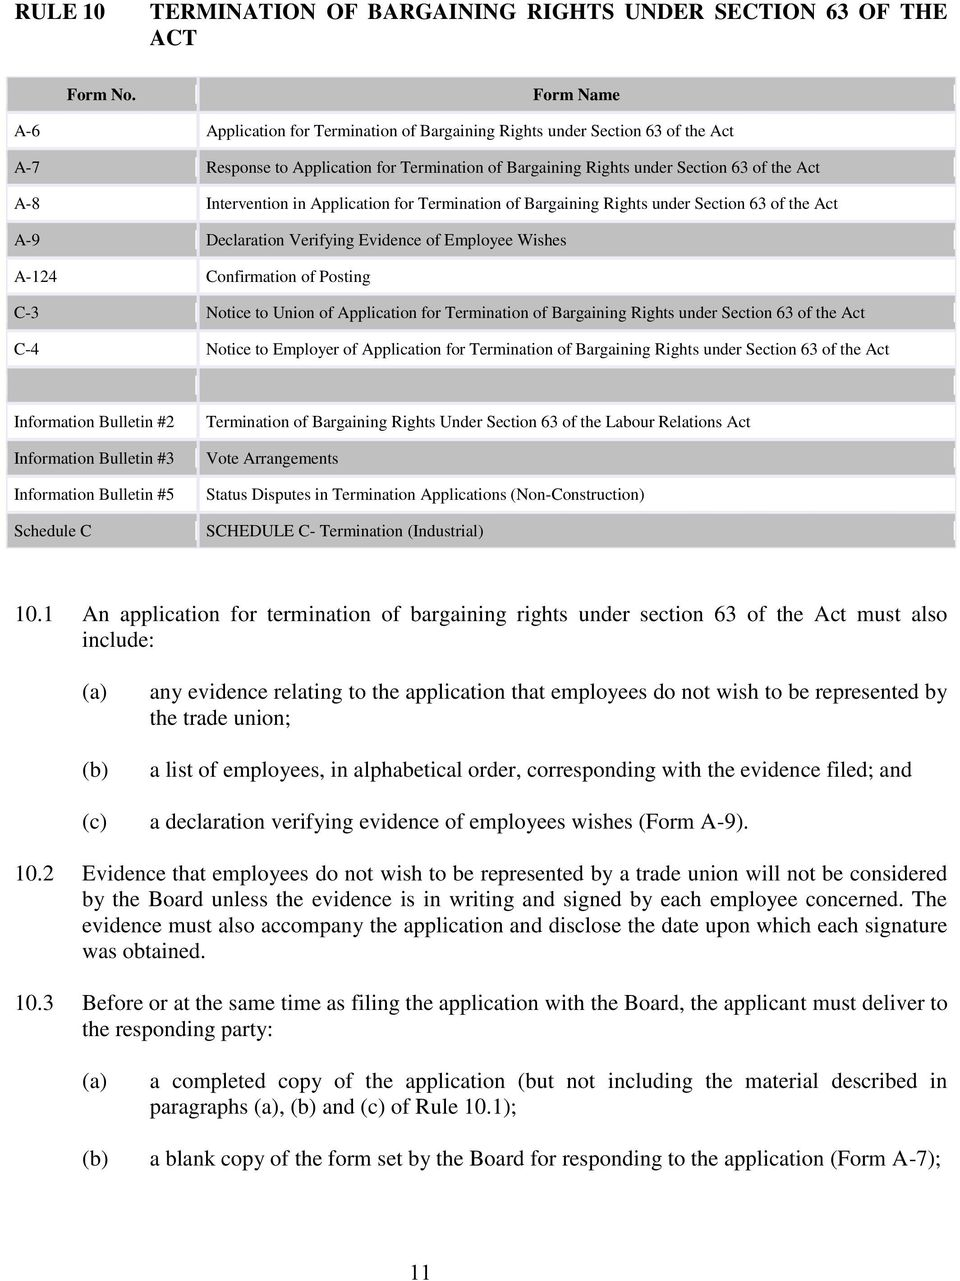 A-124 Confirmation of Posting C-3 Notice to Union of Application for Termination of Bargaining Rights under Section 63 of the Act C-4 Notice to Employer of Application for Termination of Bargaining